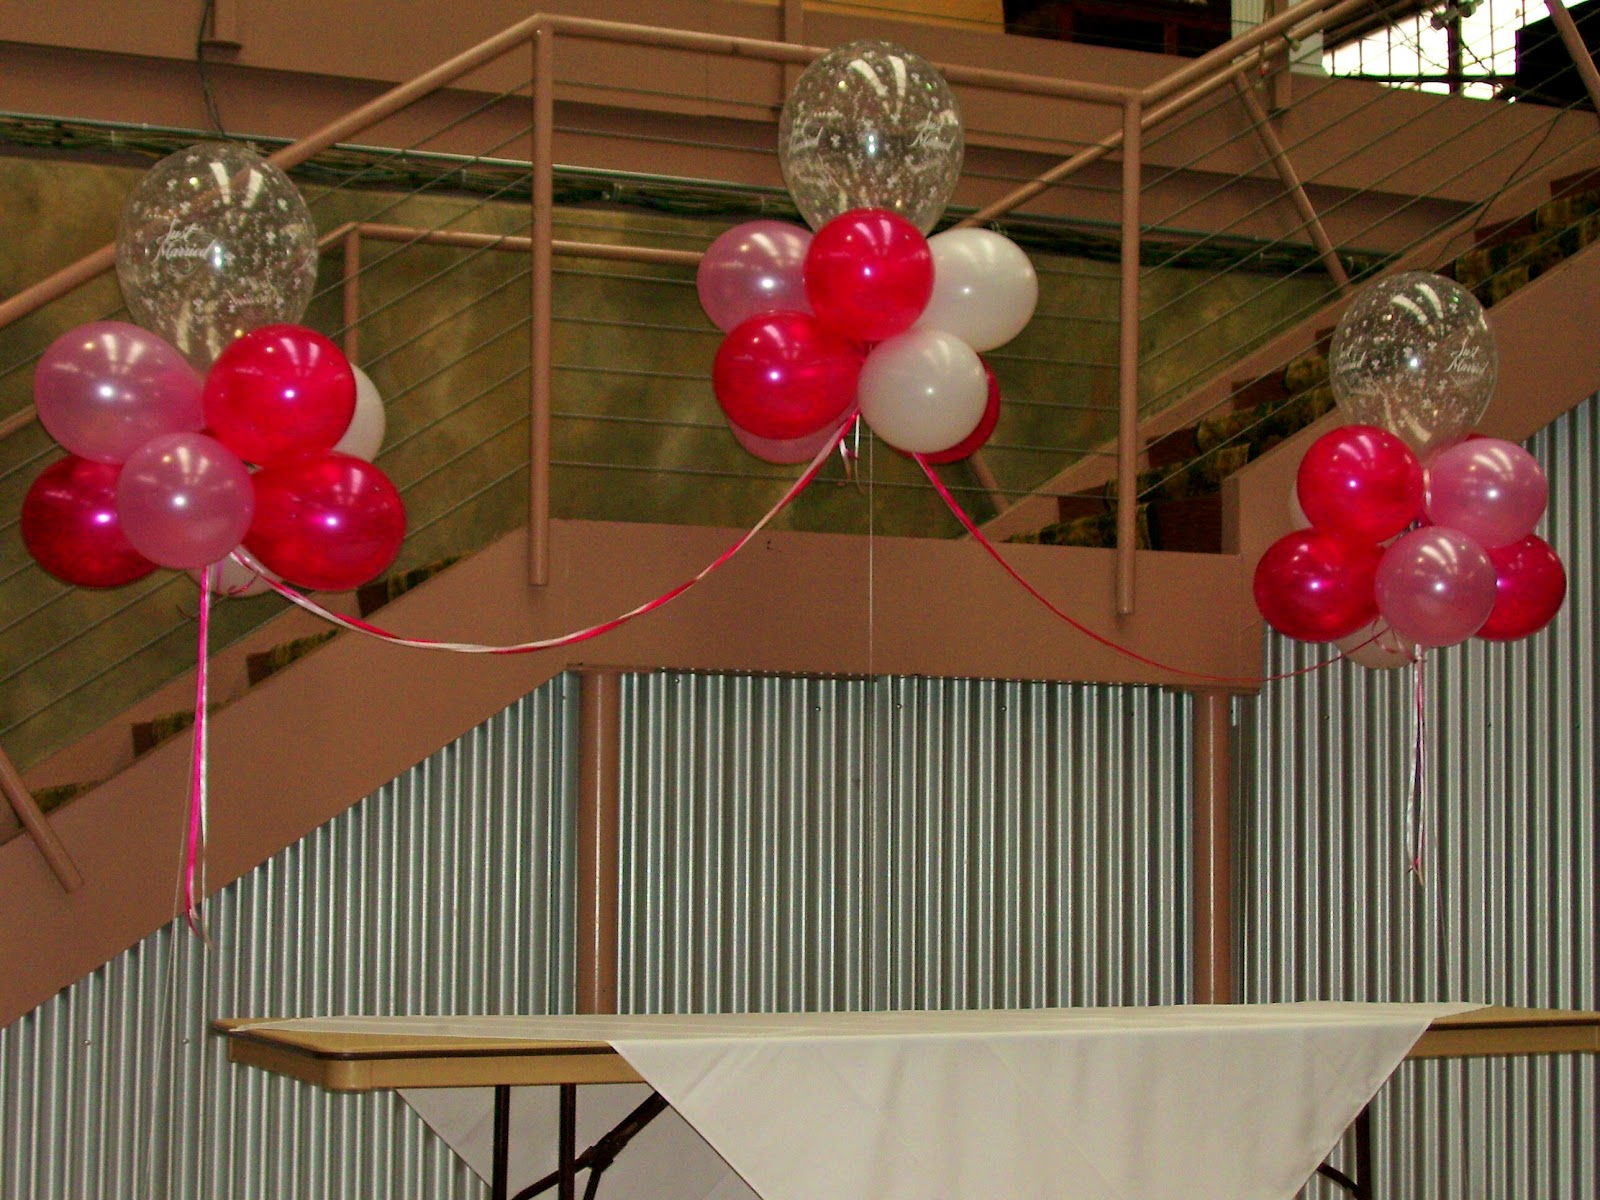 How to make Do It Yourself Balloon Arches, Columns & more